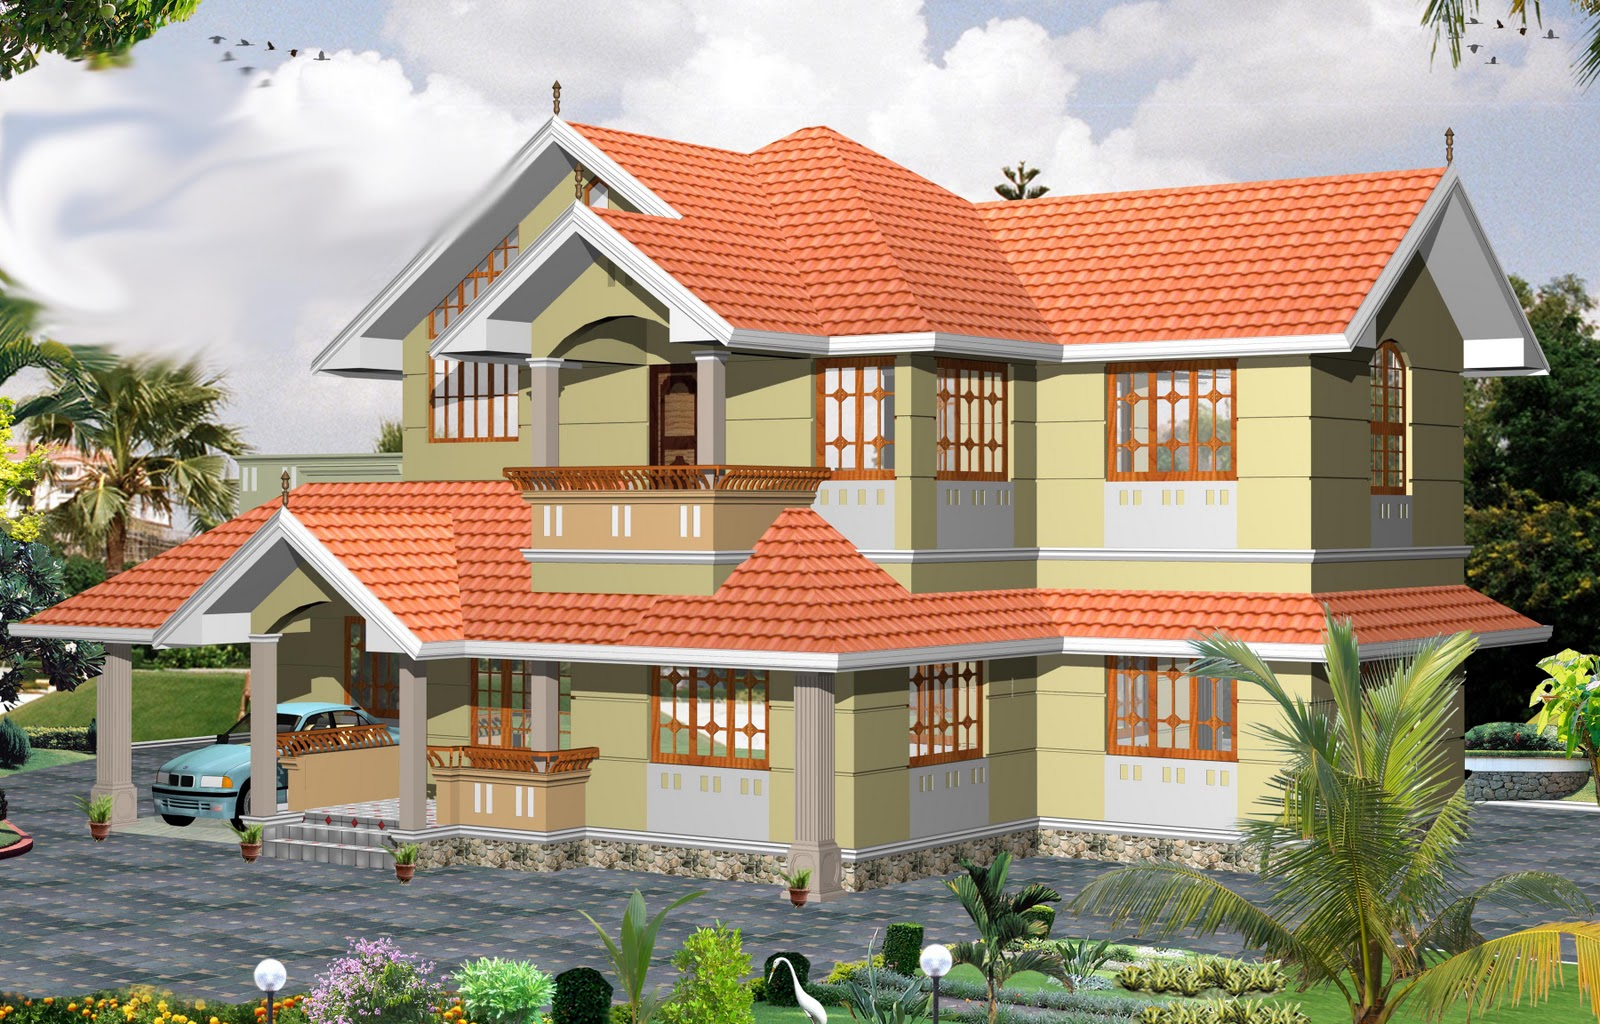 Kerala building construction july 2011 for House plans india free